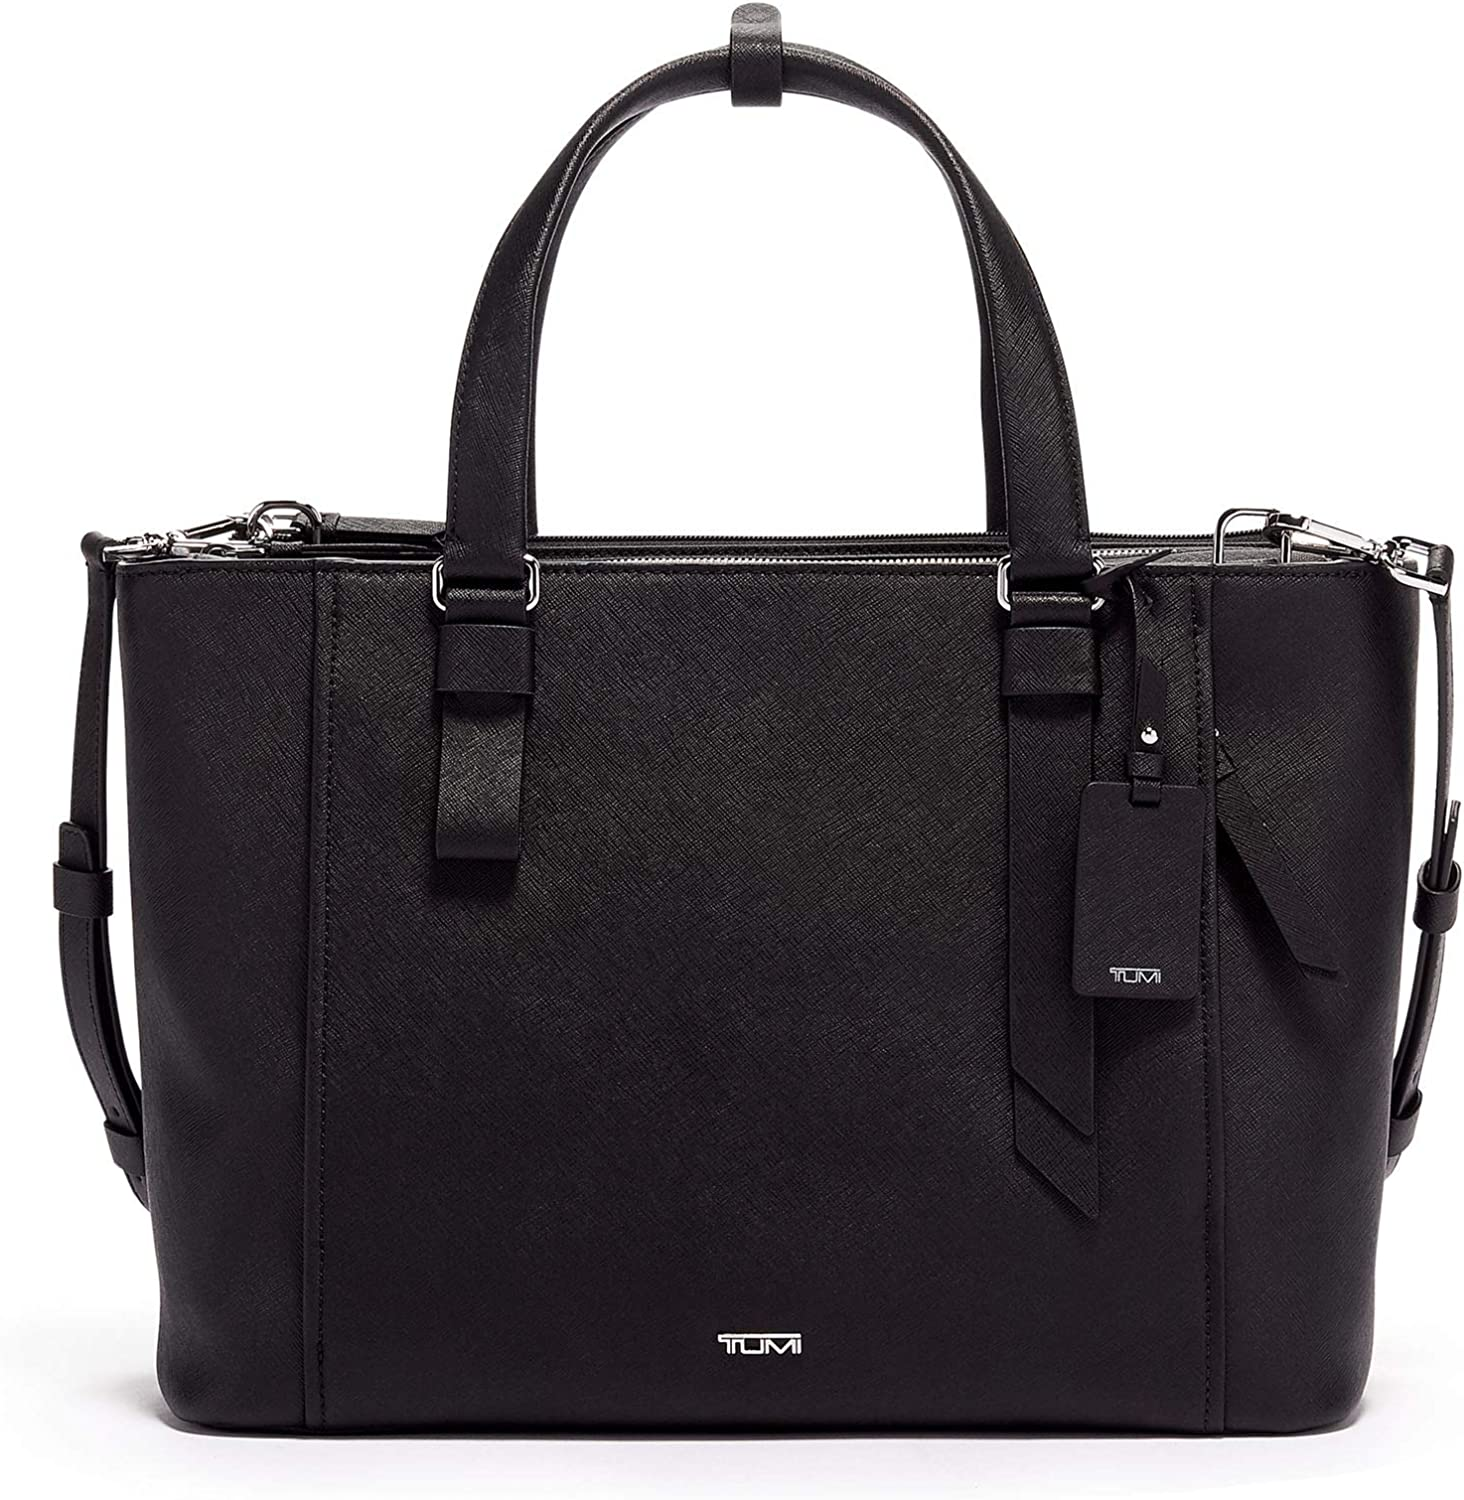 TUMI - Varek Park Leather Laptop Tote - 12 Inch Computer Bag for Men and Women - Black